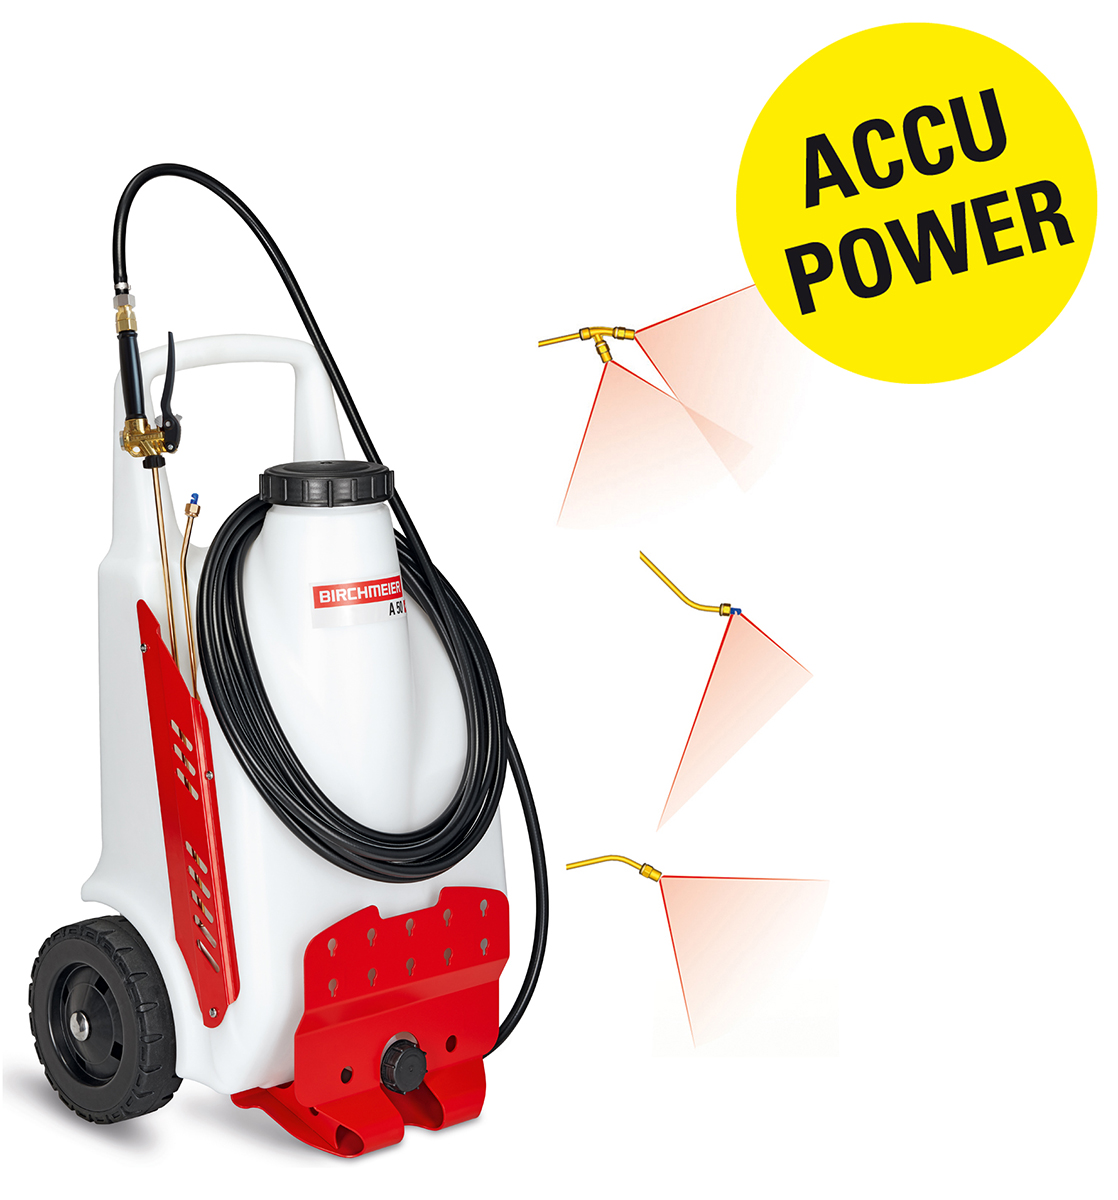 Two-wheeled battery sprayer 14 - 145 psi A 50 AZ1 with Li-on battery from Birchmeier